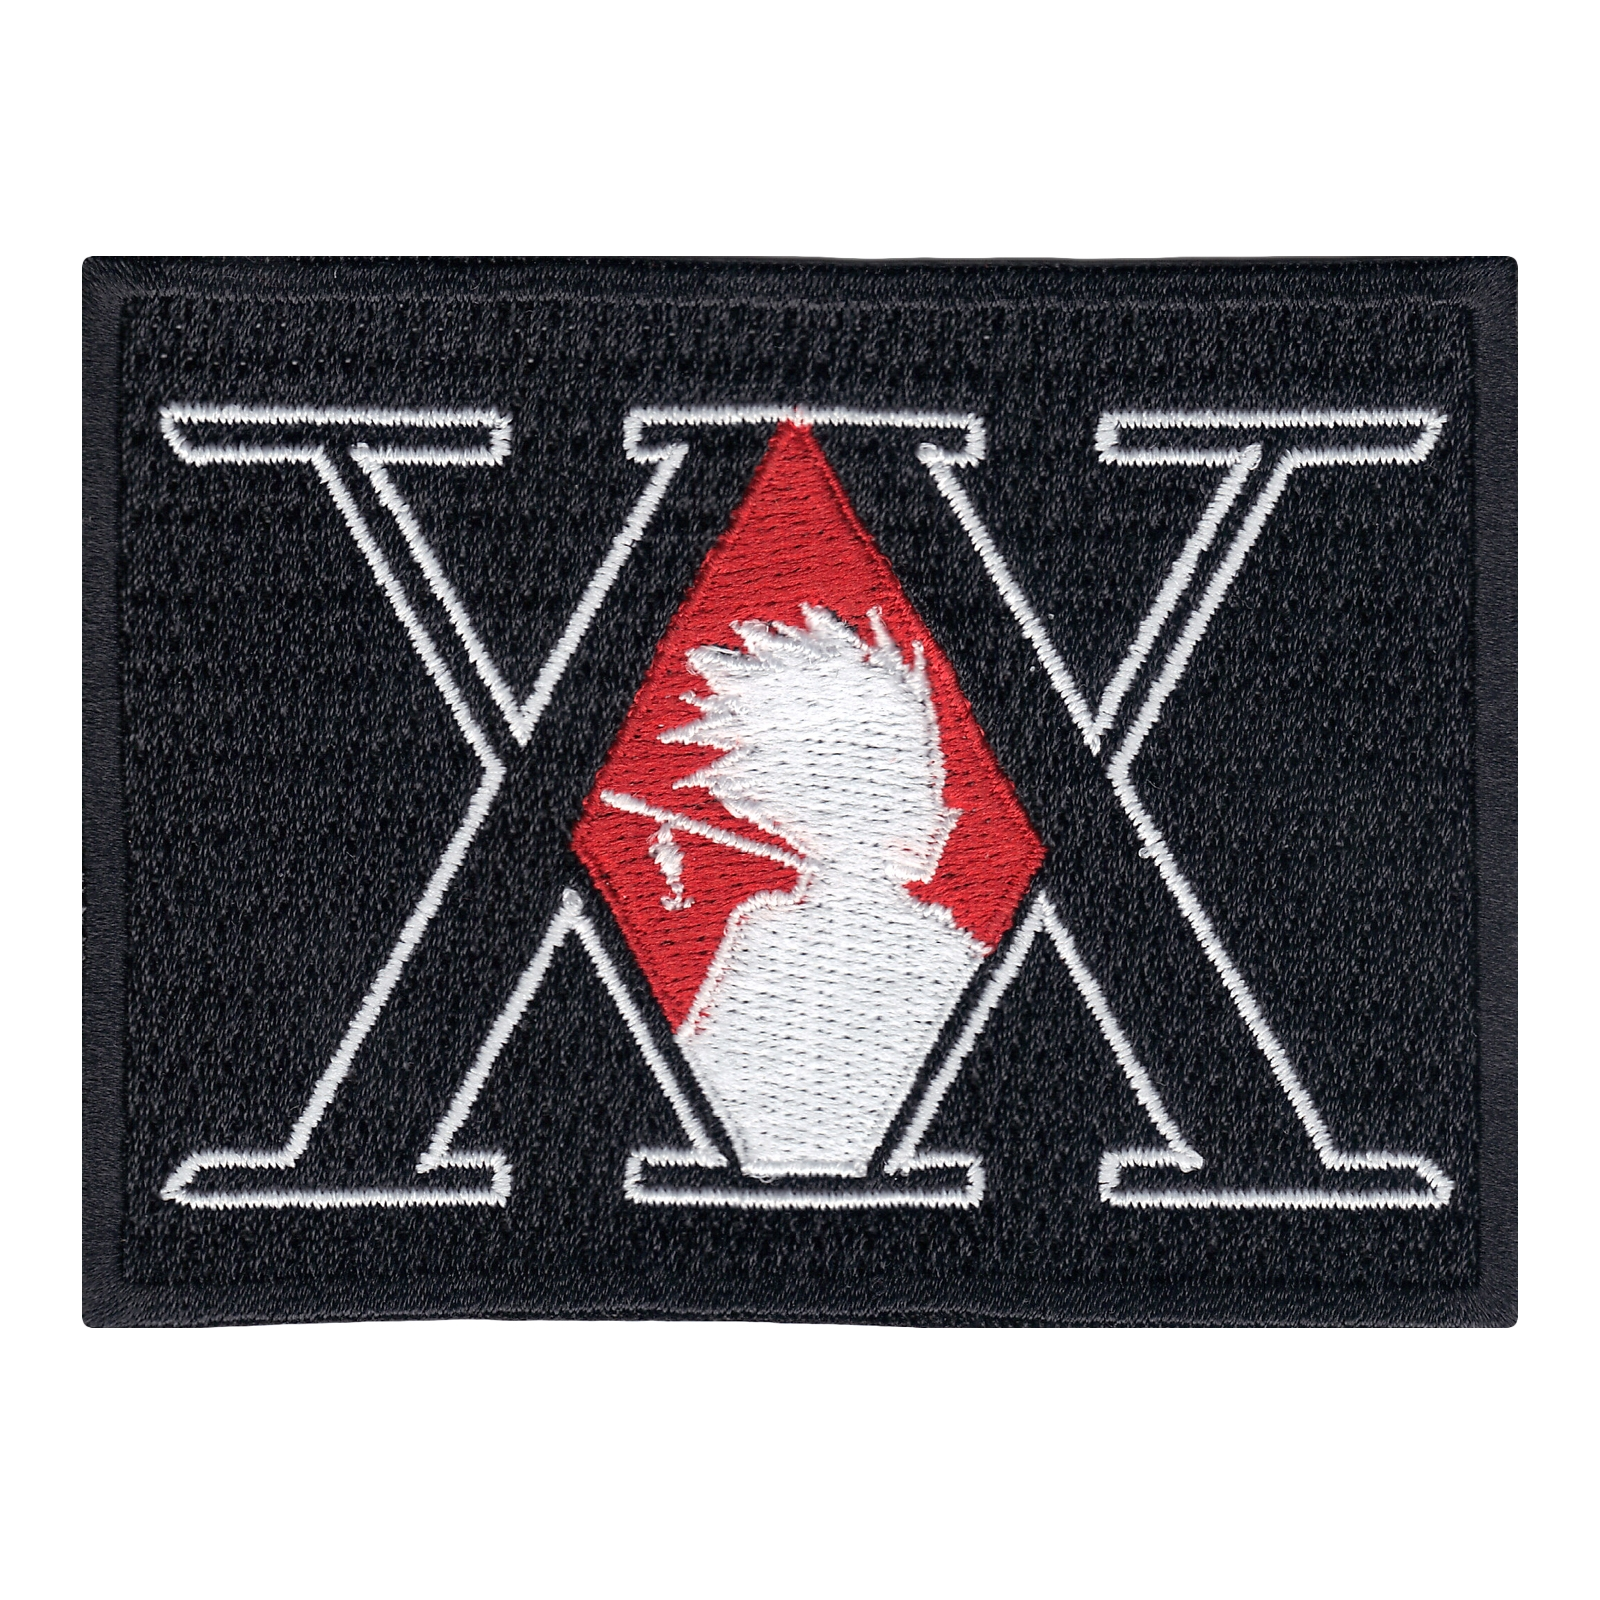 Anime X Hunter Logo Iron On Patch